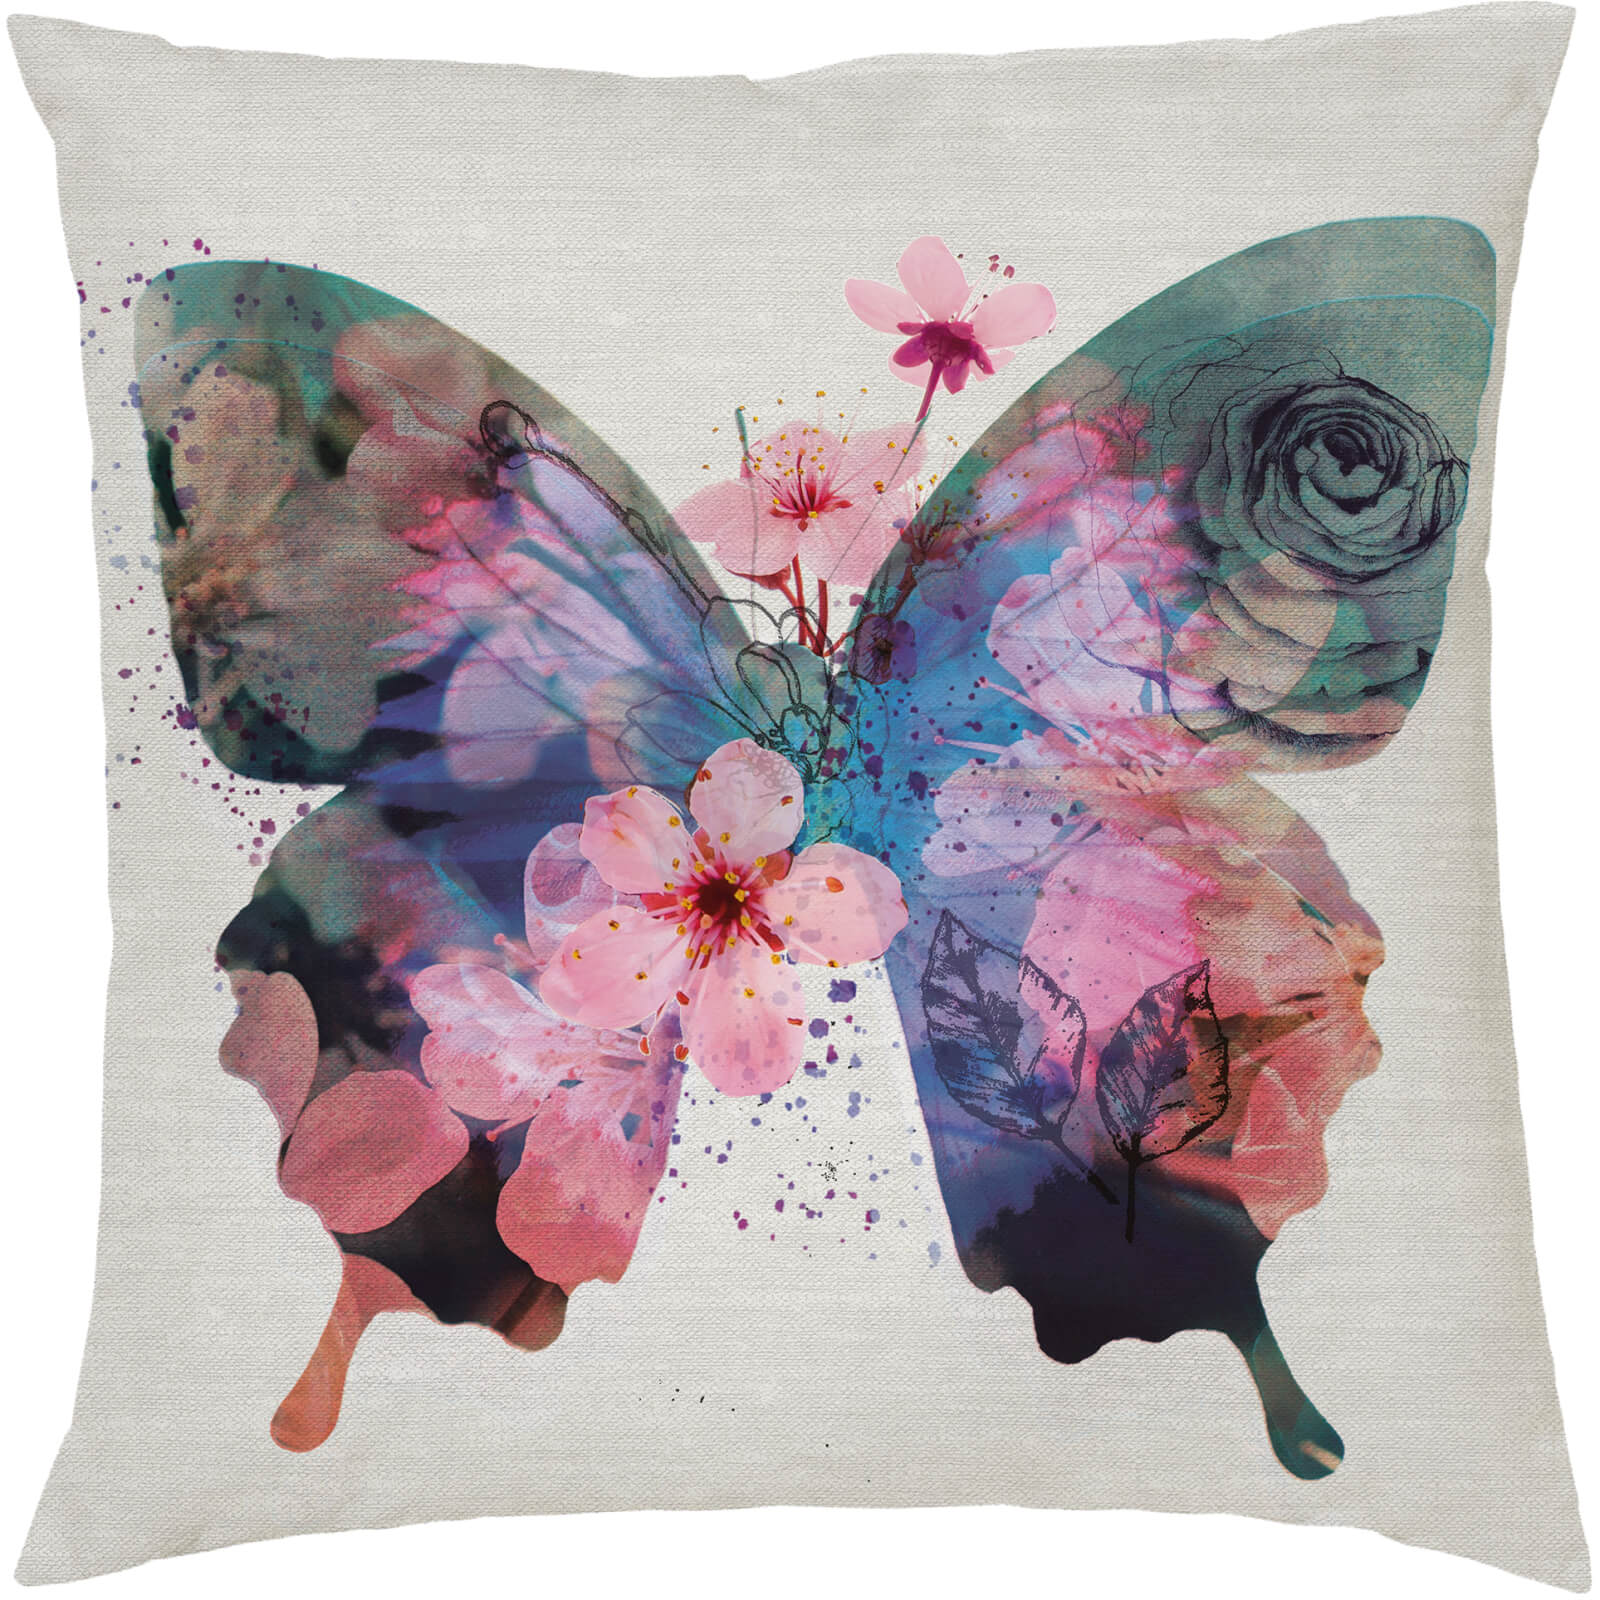 Floral Print Butterfly Cushion - Multi (45 x 45cm)